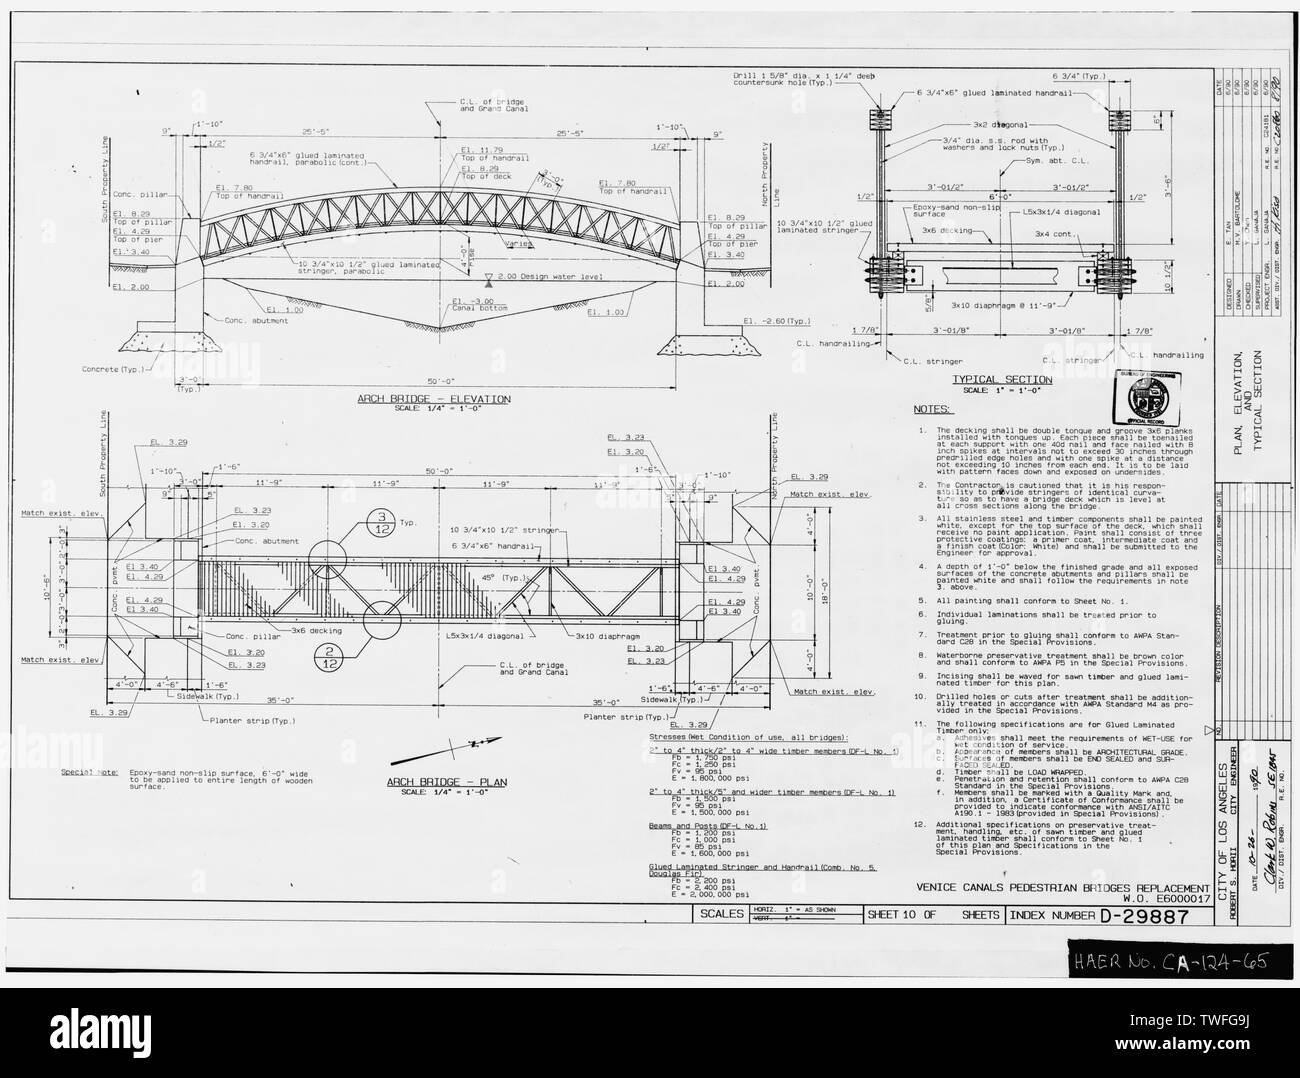 PLANS FOR PROPOSED ARCHED BRIDGE OVER GRAND CANAL AT 25TH AVENUE Plan Sheet D-29887, Venice Canals Pedestrian Bridges Replacement, Sheet No. 10 of 14 (delineated by Manuel Bartolome, June 1990) - Venice Canals, Community of Venice, Los Angeles, Los Angeles County, CA - Stock Image